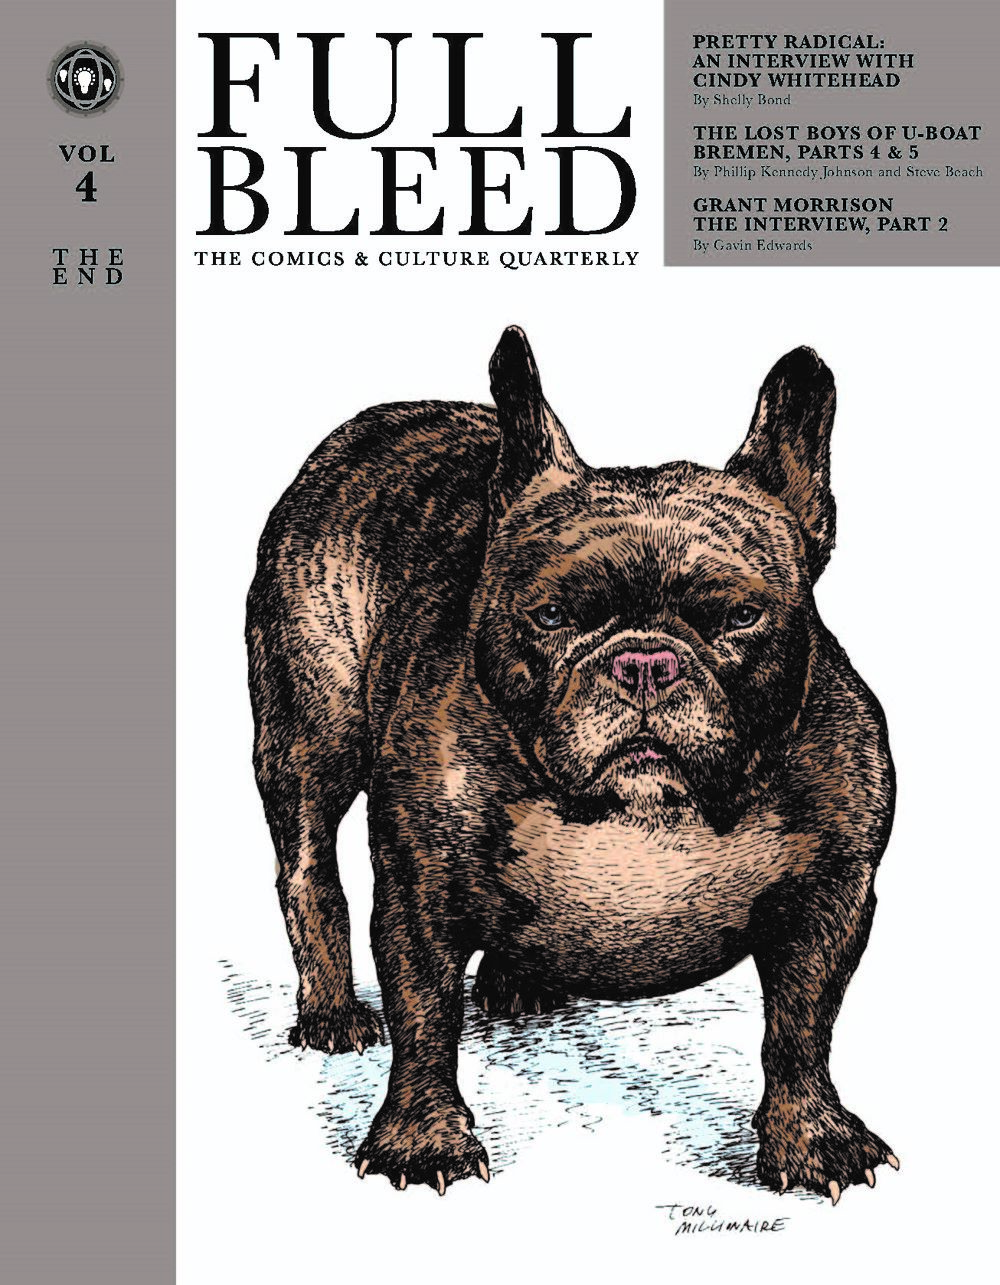 FB_V4_Covers_x2_071920-dragged ComicList Previews: FULL BLEED THE COMICS AND CULTURE QUARTERLY VOLUME 4 THE END HC